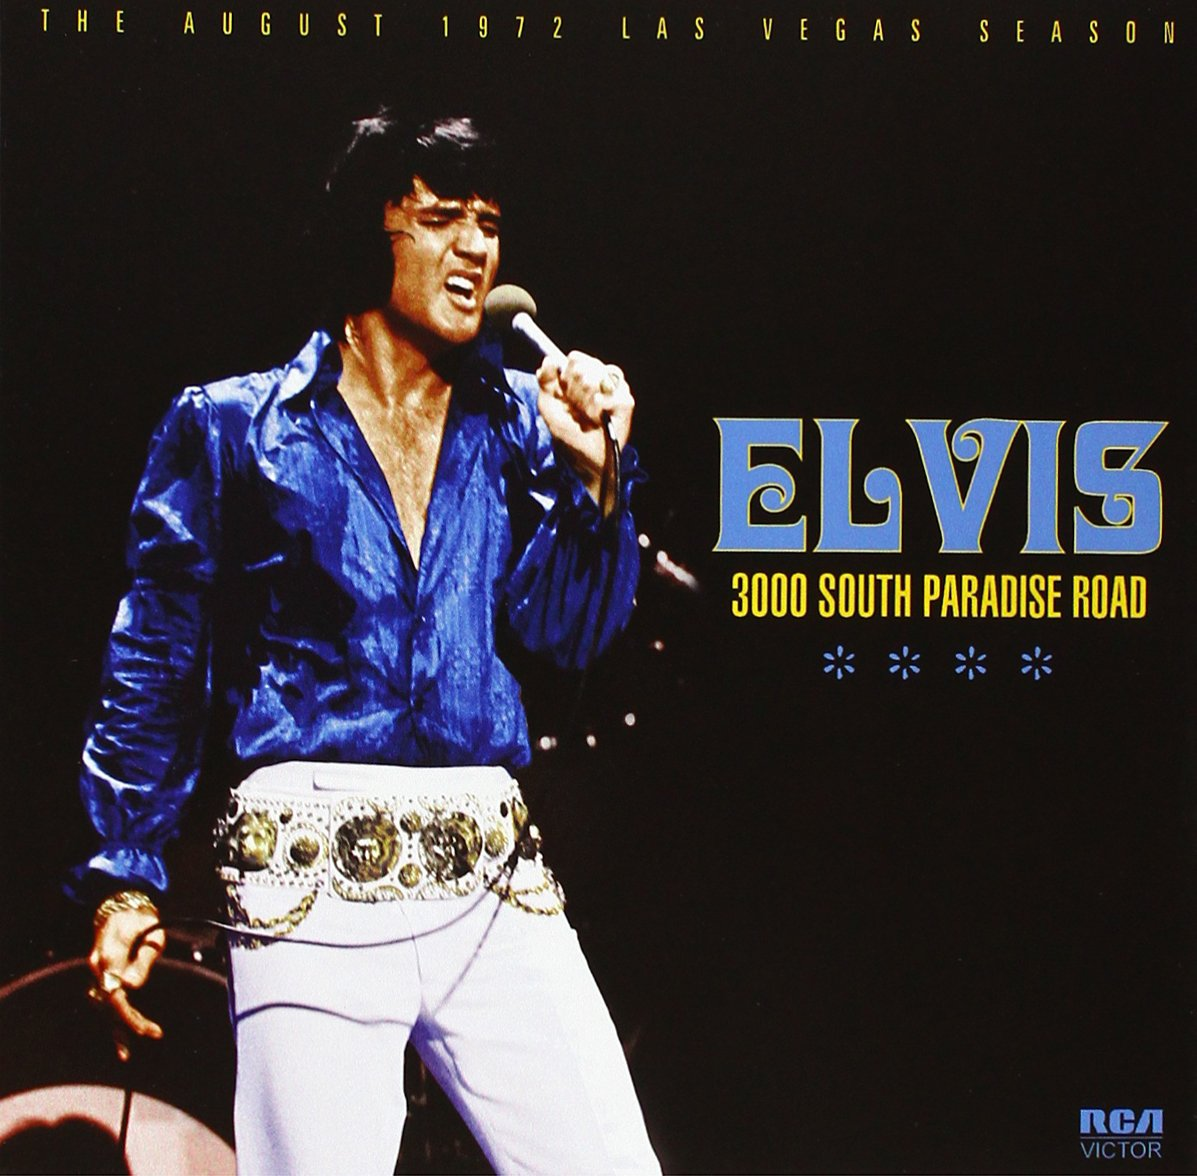 3000 South Paradise Road: The August 1972 Las Vegas Season by Sony Music / Follow That Dream Records